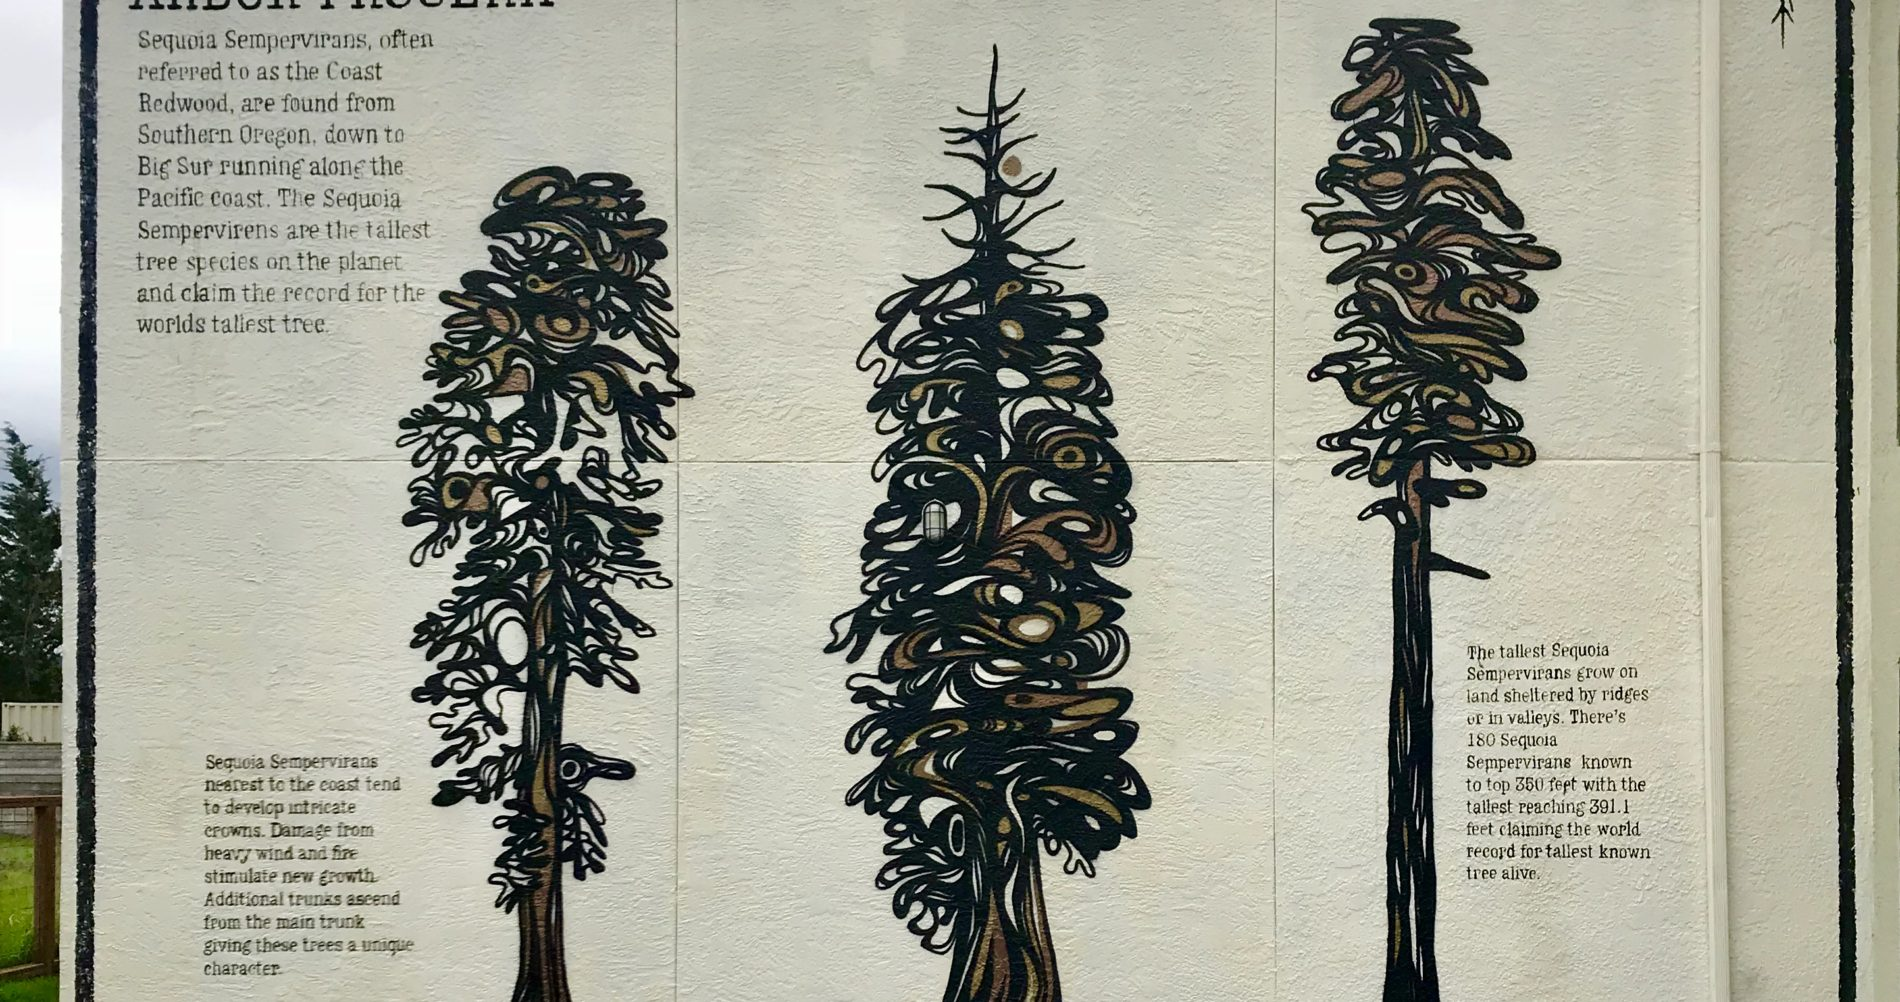 mural of trees on the south side of The Redwood Hotel